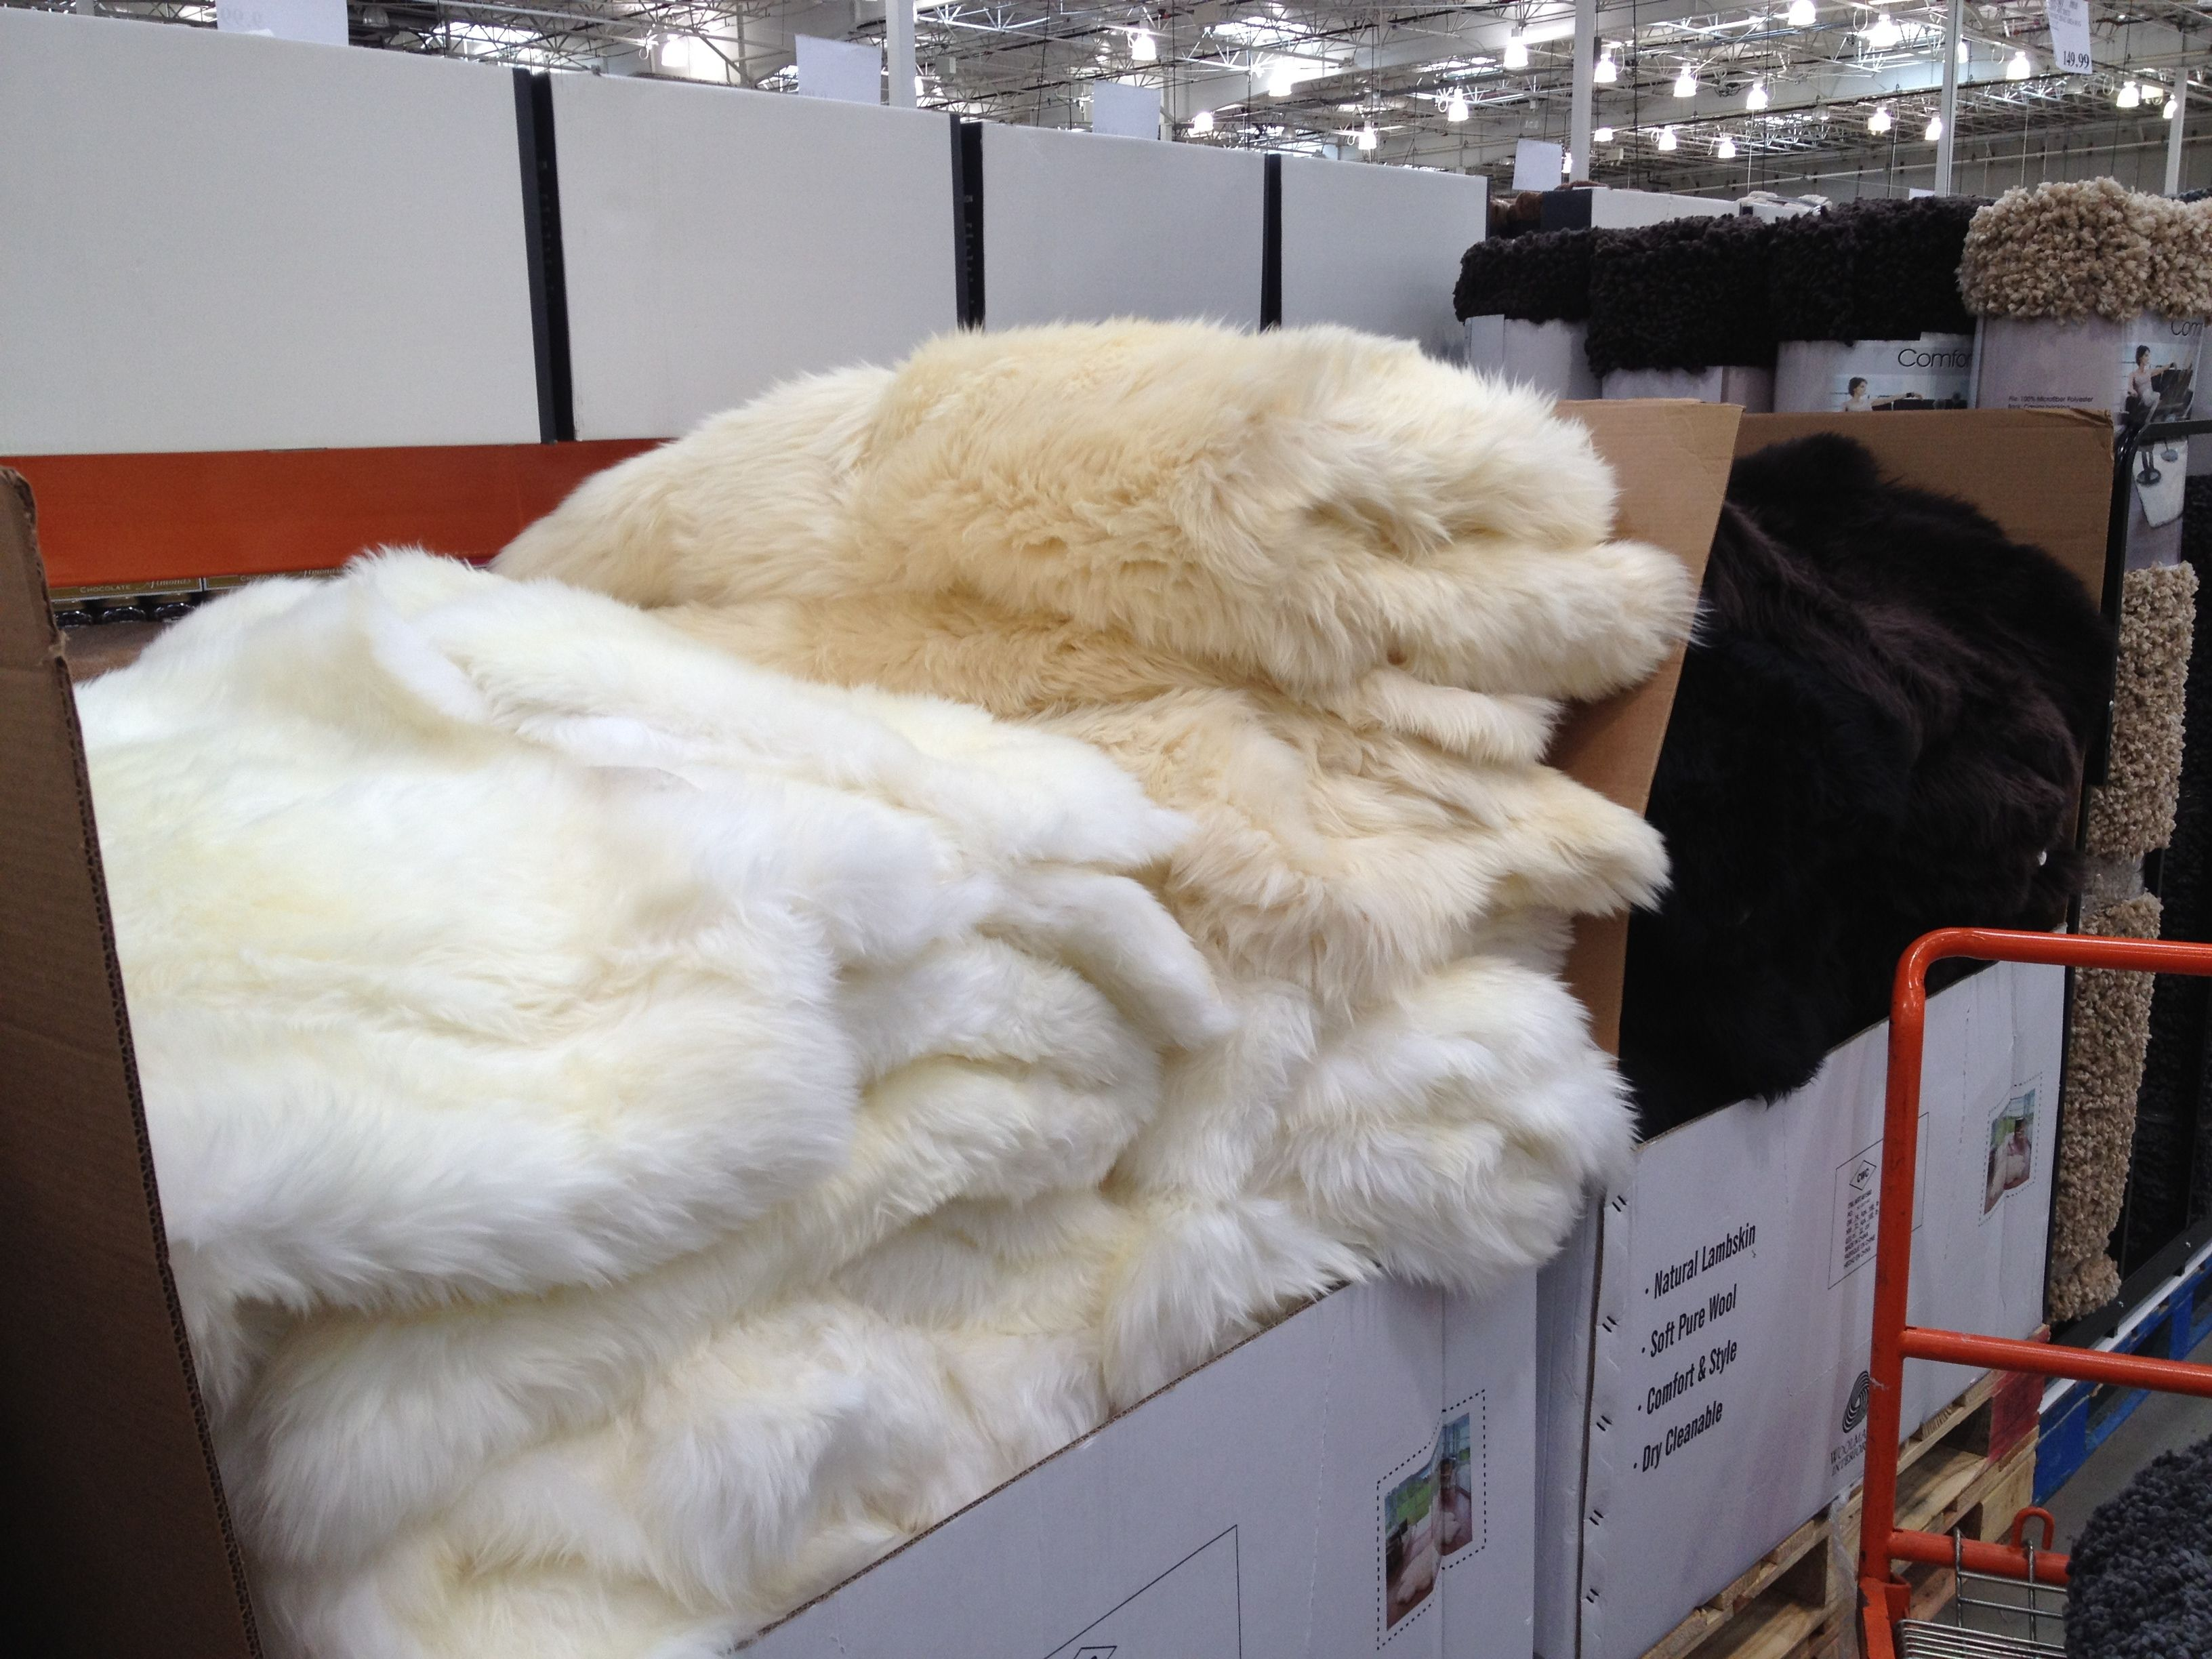 Costco Throw Blanket Pinpaul Rogers On Sheepskin  Pinterest  Fur